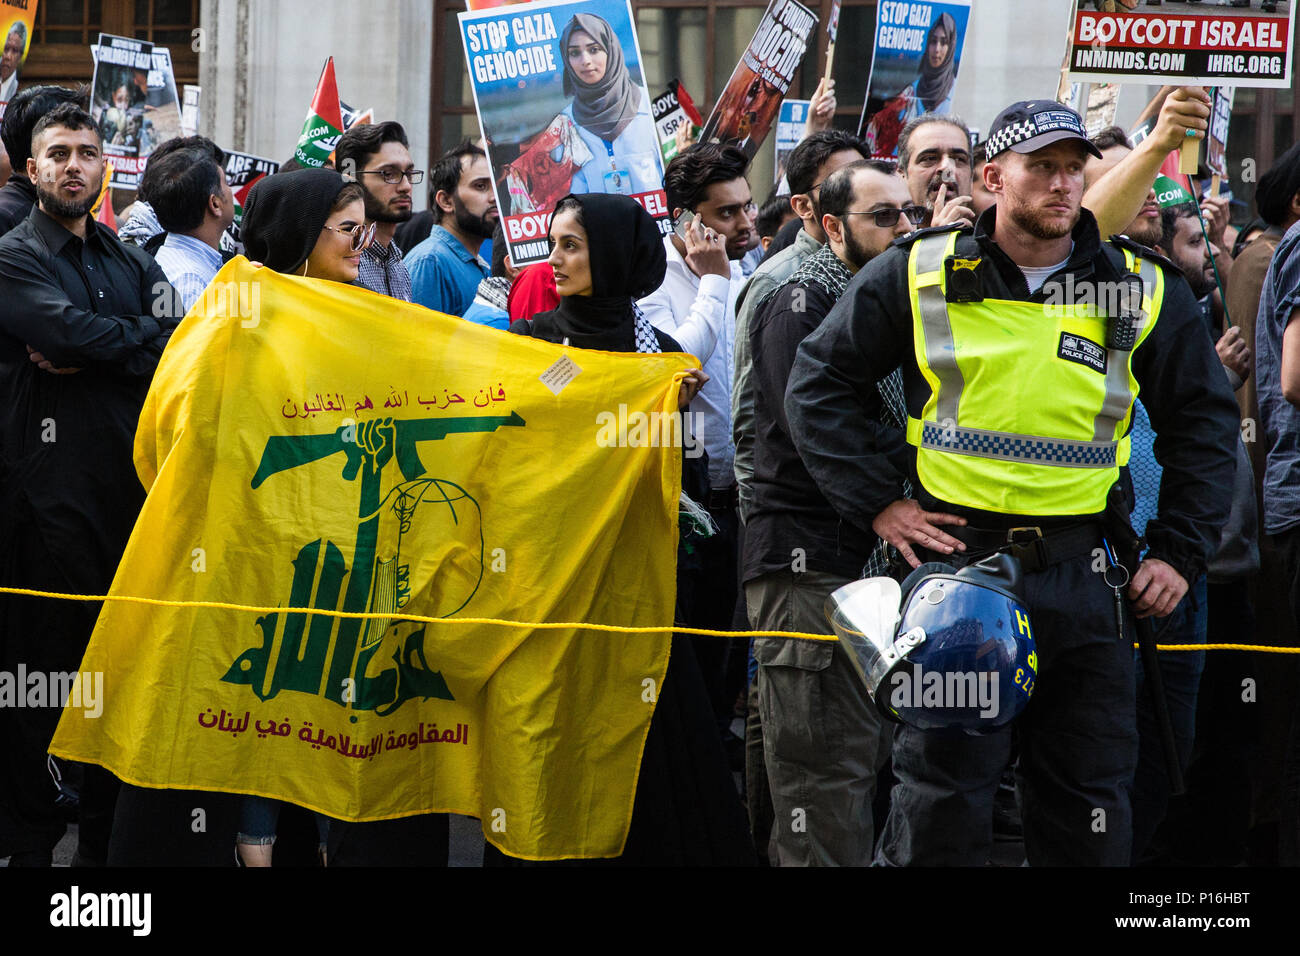 London, UK. 10th June, 2018. A Hezbollah flag among hundreds of people taking part in the pro-Palestinian Al Quds Day march through central London organised by the Islamic Human Rights Commission. An international event, it began in Iran in 1979. Quds is the Arabic name for Jerusalem. Credit: Mark Kerrison/Alamy Live News - Stock Image